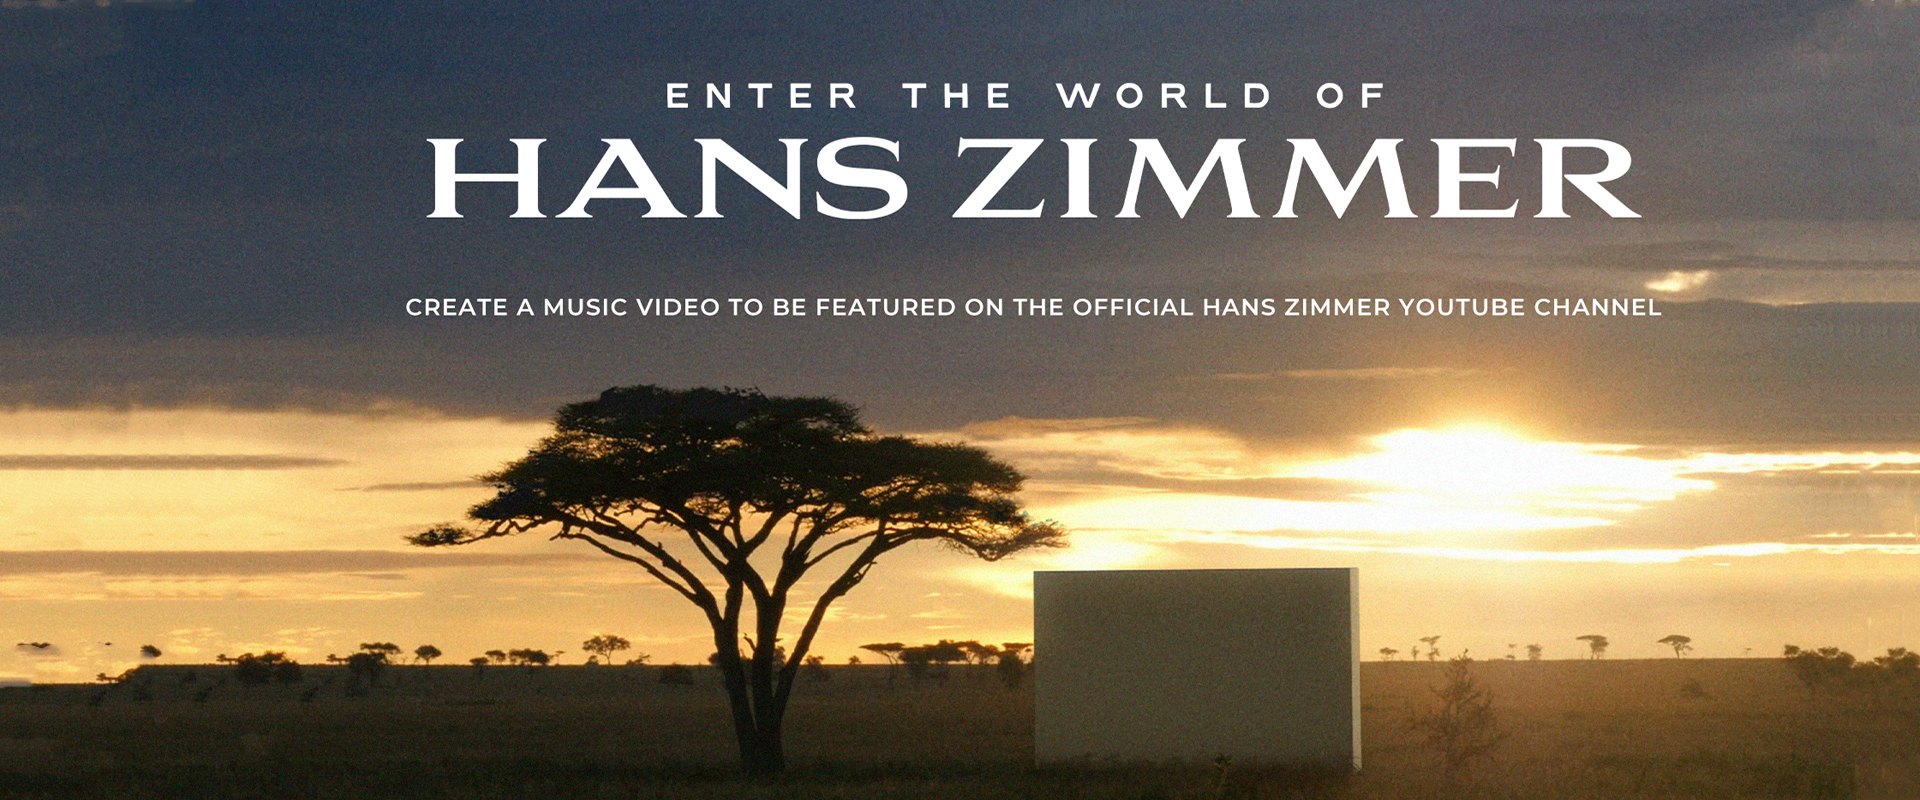 Hans Zimmer - Enter the World of Hans Zimmer